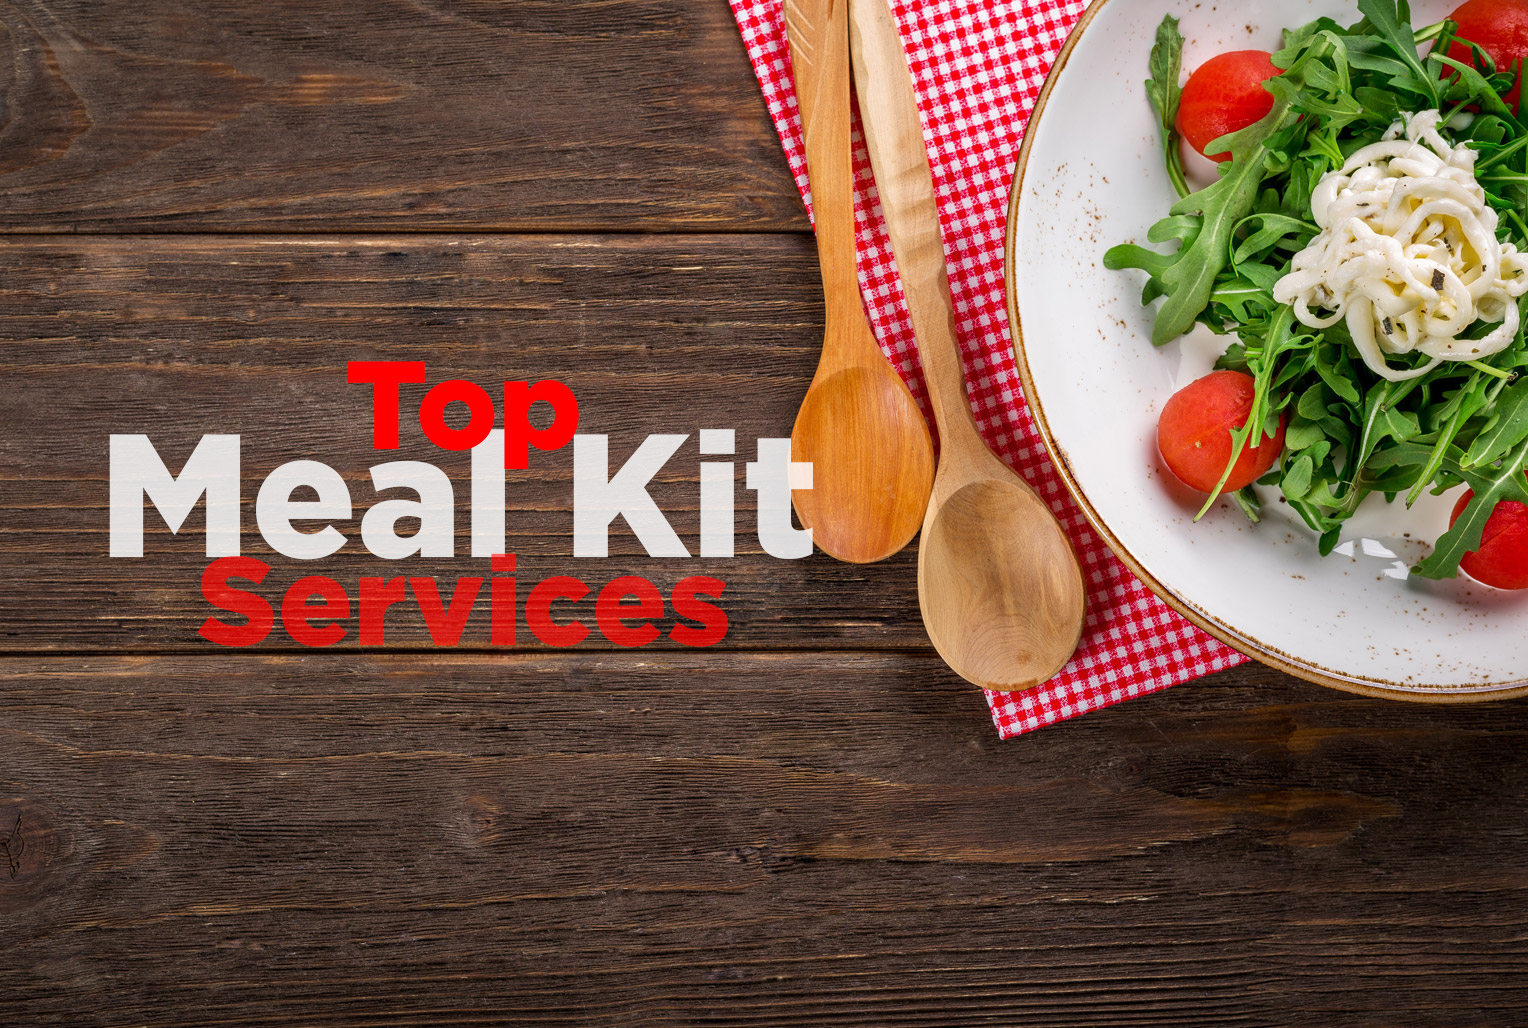 Top Meal Kits